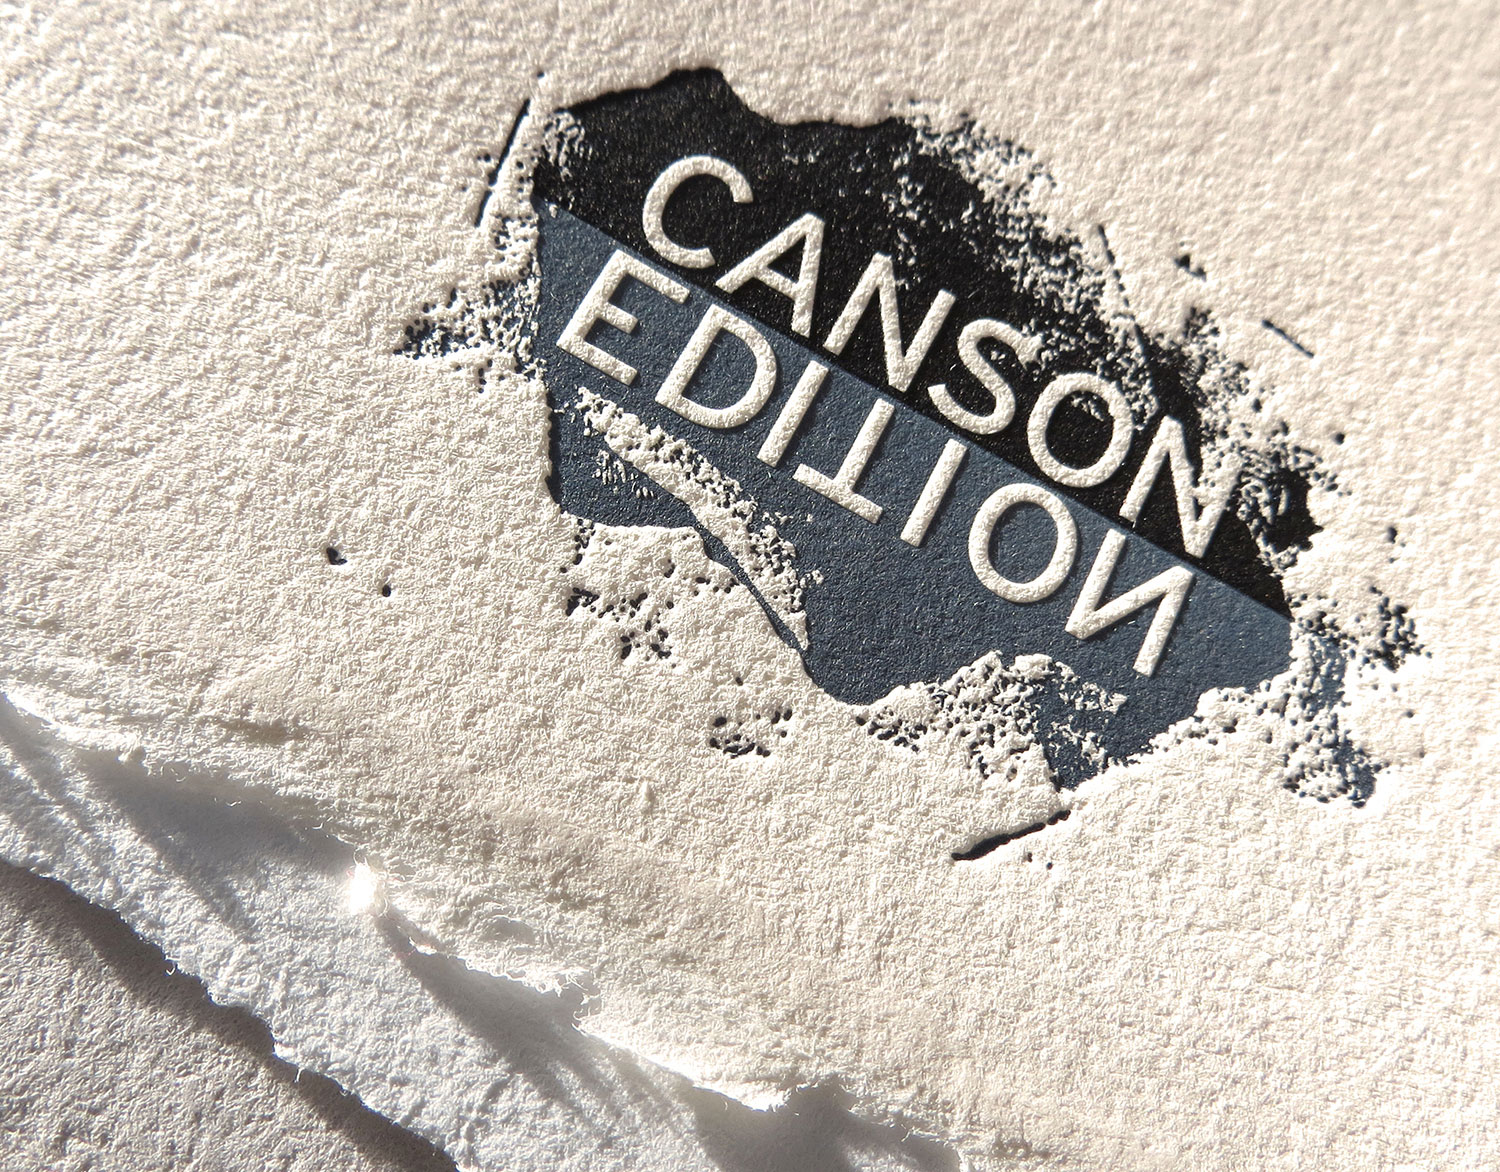 CANSON-EDITION-LOGO-PHOTO-SLIDE.jpg